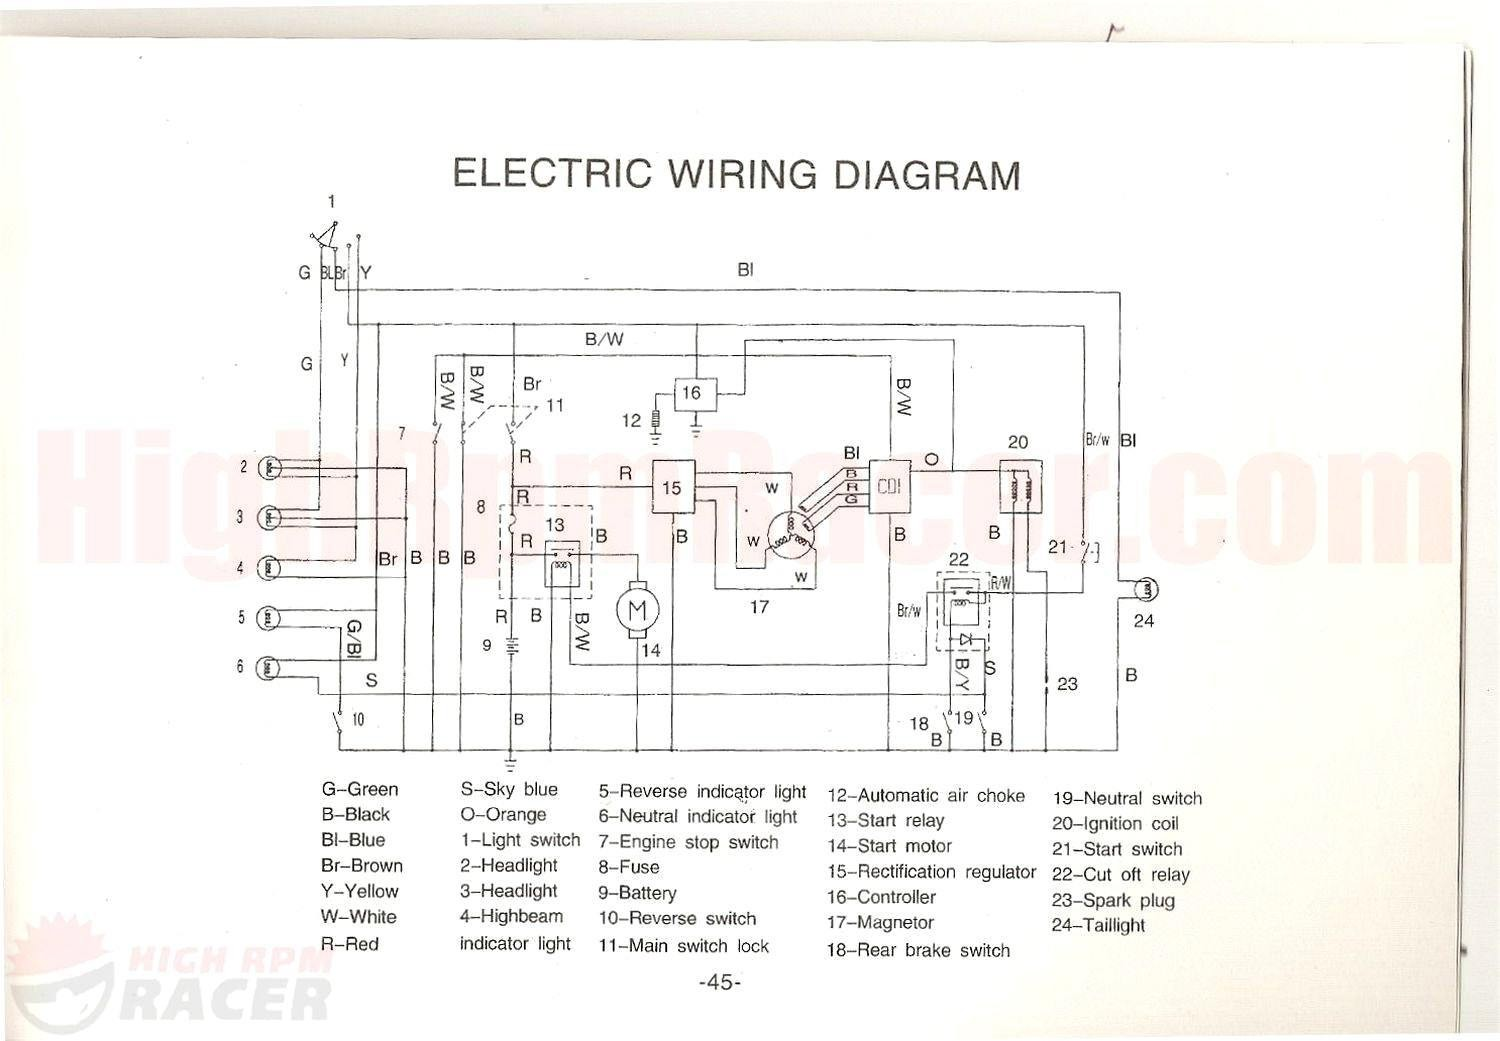 Kazuma Meerkat 50cc Wiring Diagram Schematic Diagrams Wombat Atv 50 2007 Coolster